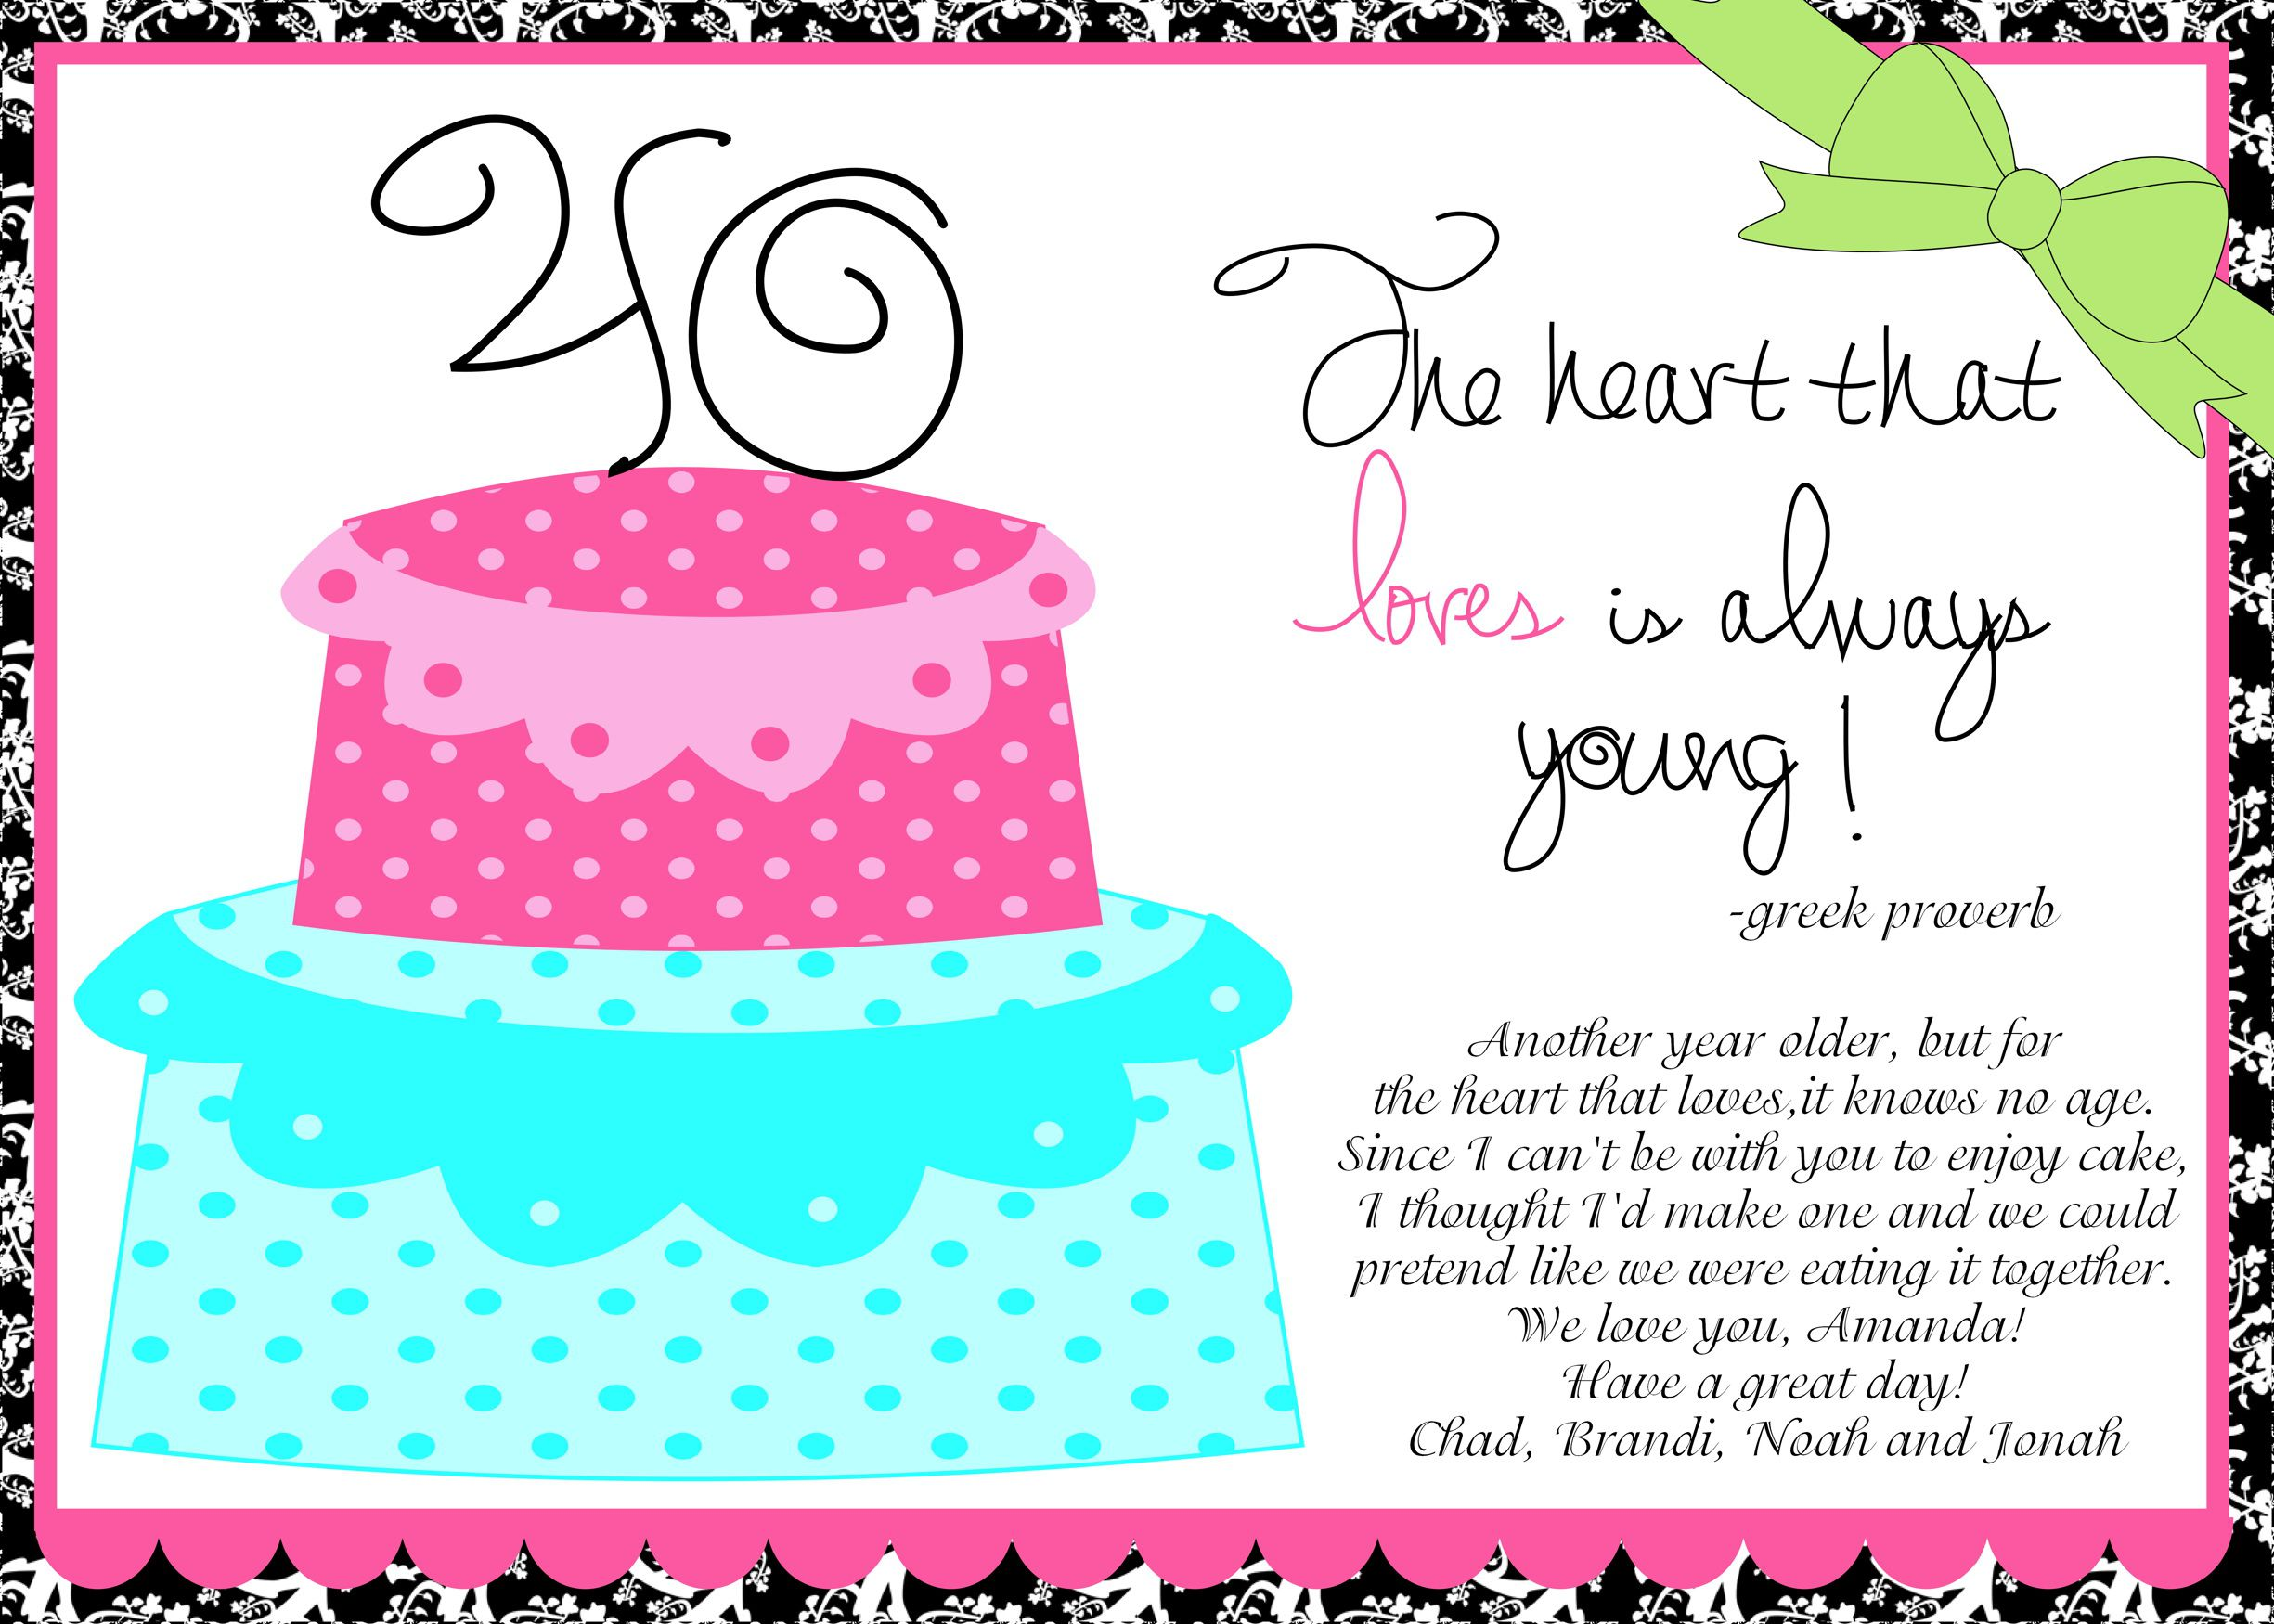 ready made birthday invitation cards ; ready-made-birthday-invitation-cards-happy-birthday-invitation-cards-by-means-of-creating-magnificent-outlooks-around-your-birthday-invitation-templates-2